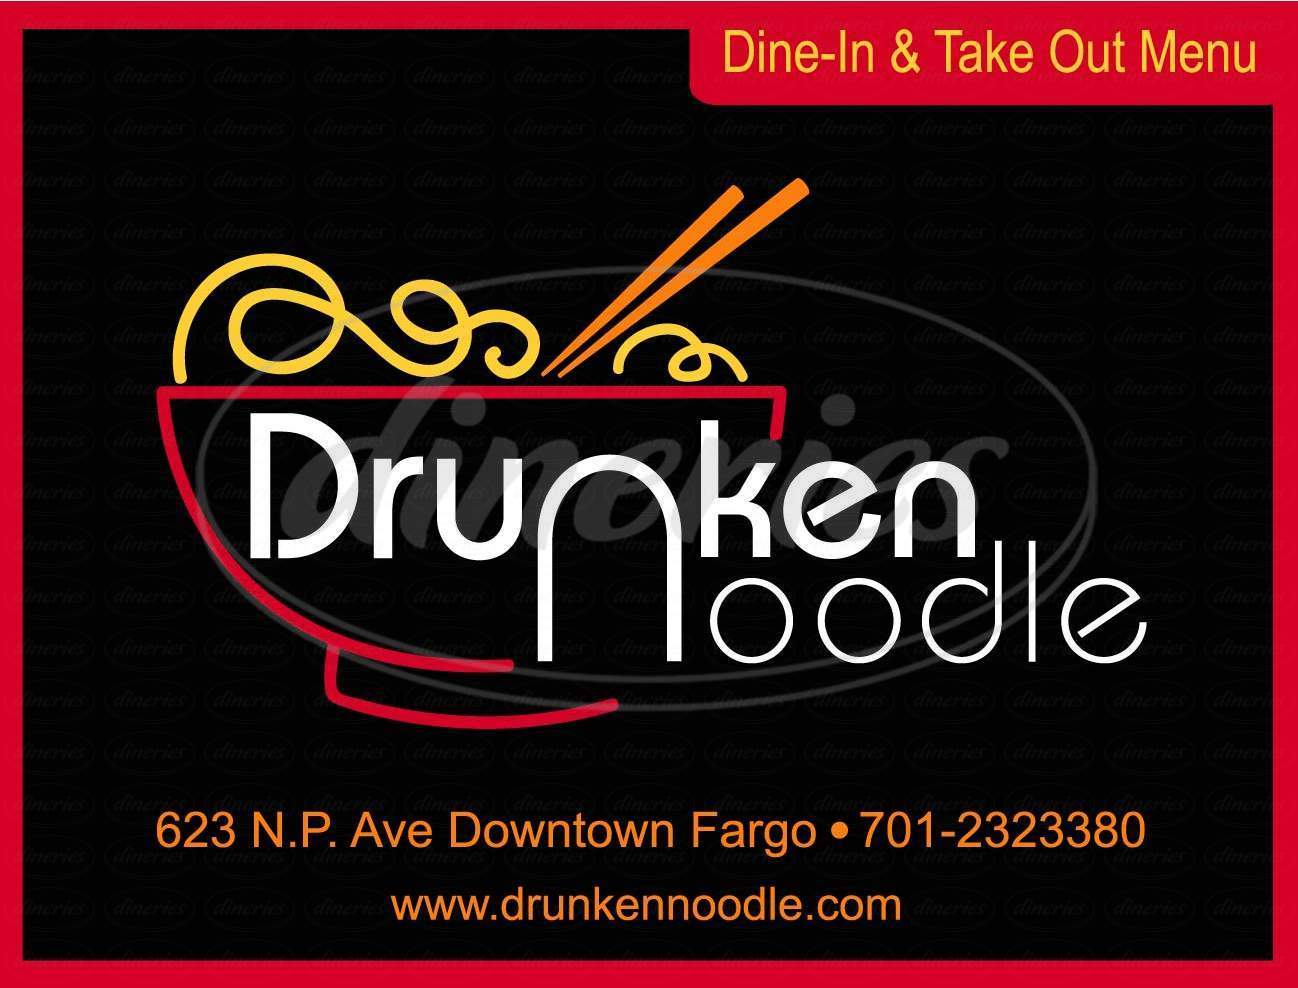 Big menu for Drunken Noodle, Fargo